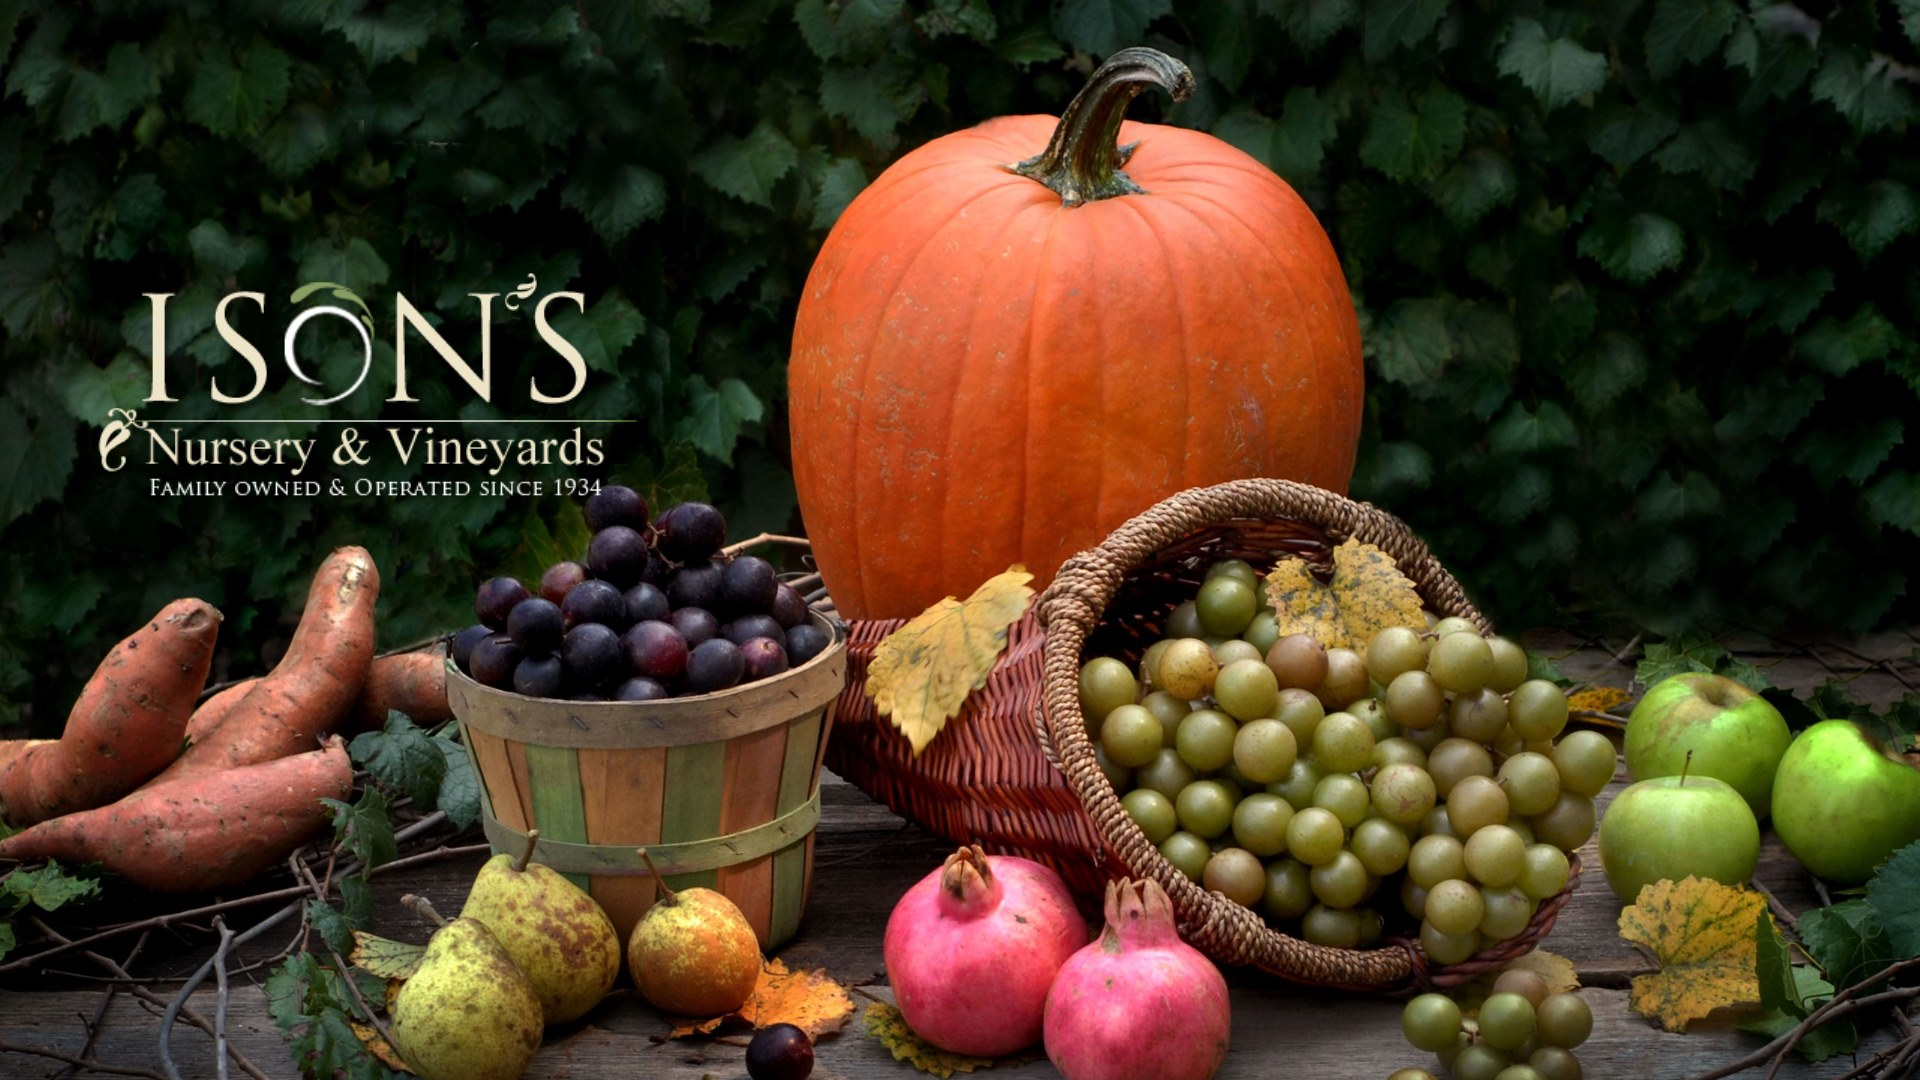 https://www.isons.com/wp-content/uploads/2020/10/Muscadine-Fall-Harvest-Picture.jpg